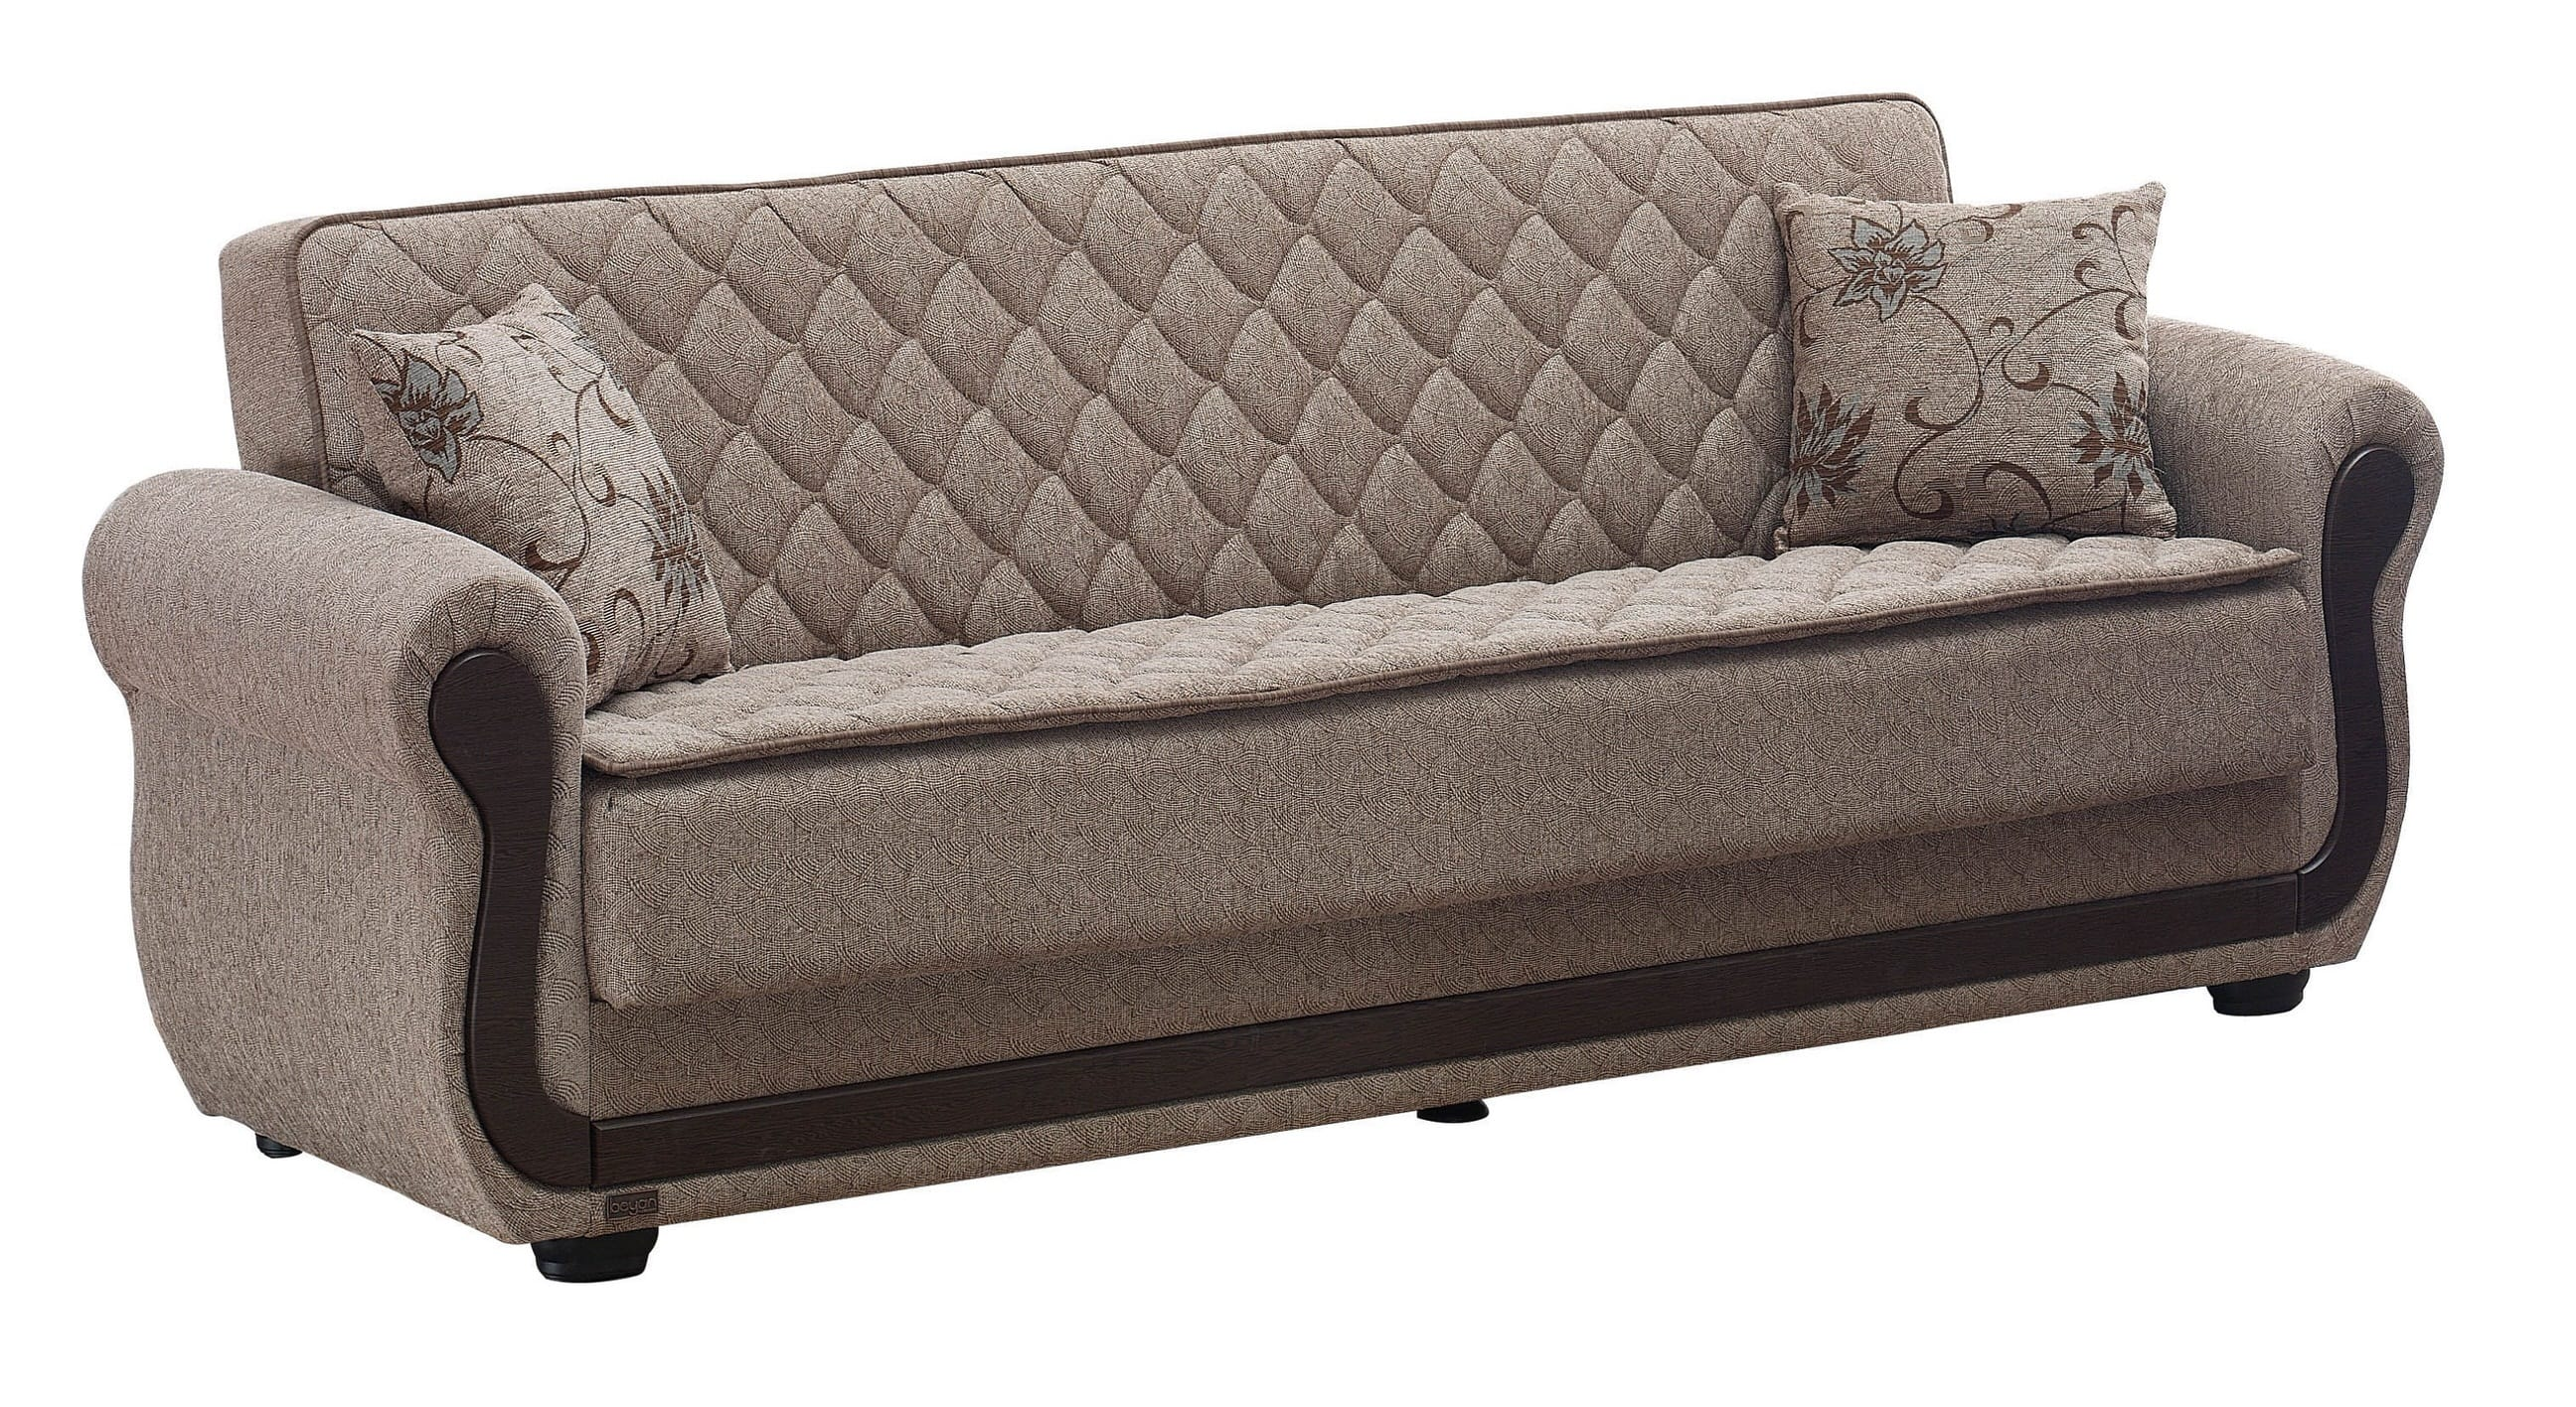 Newark Sofa Bed by Empire Furniture USA